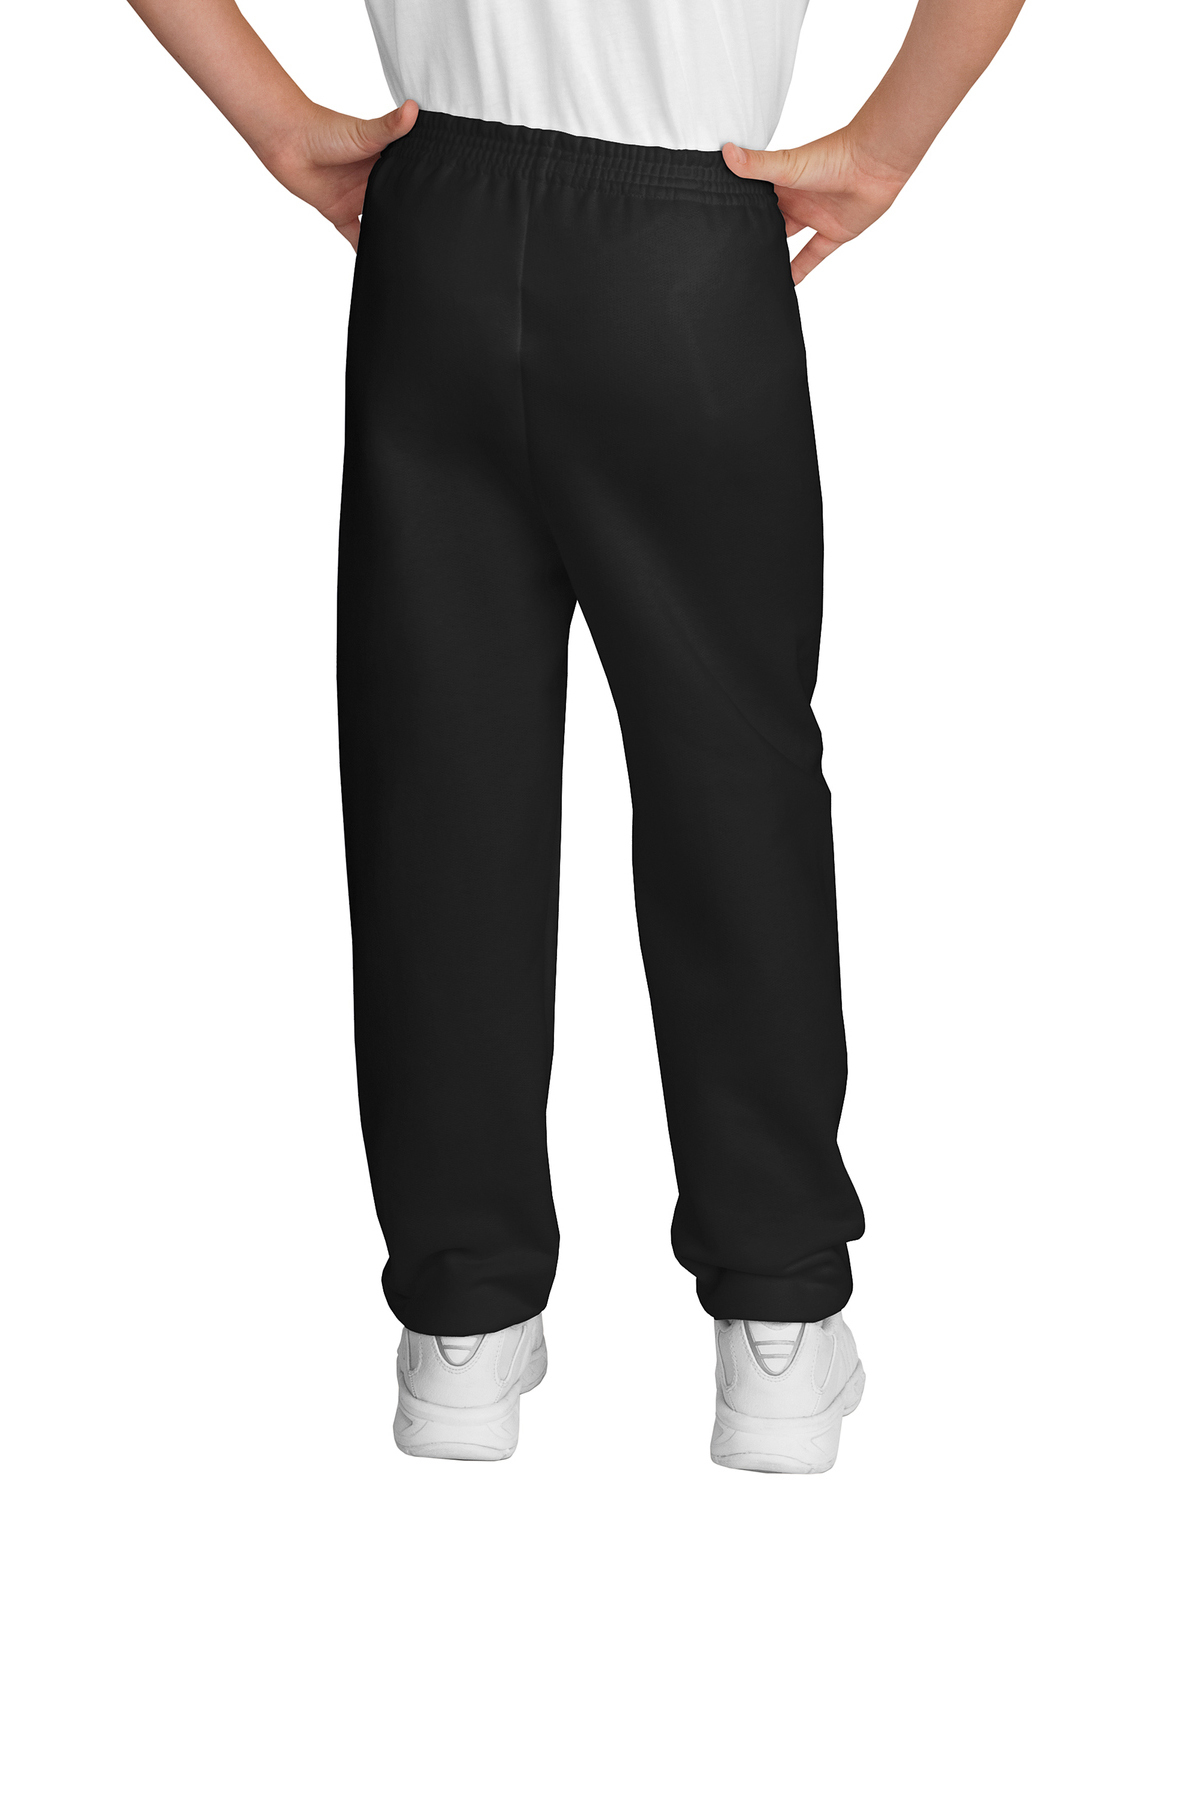 Athletic Heather Port /& Company PC90YP Youth Sweatpant XL